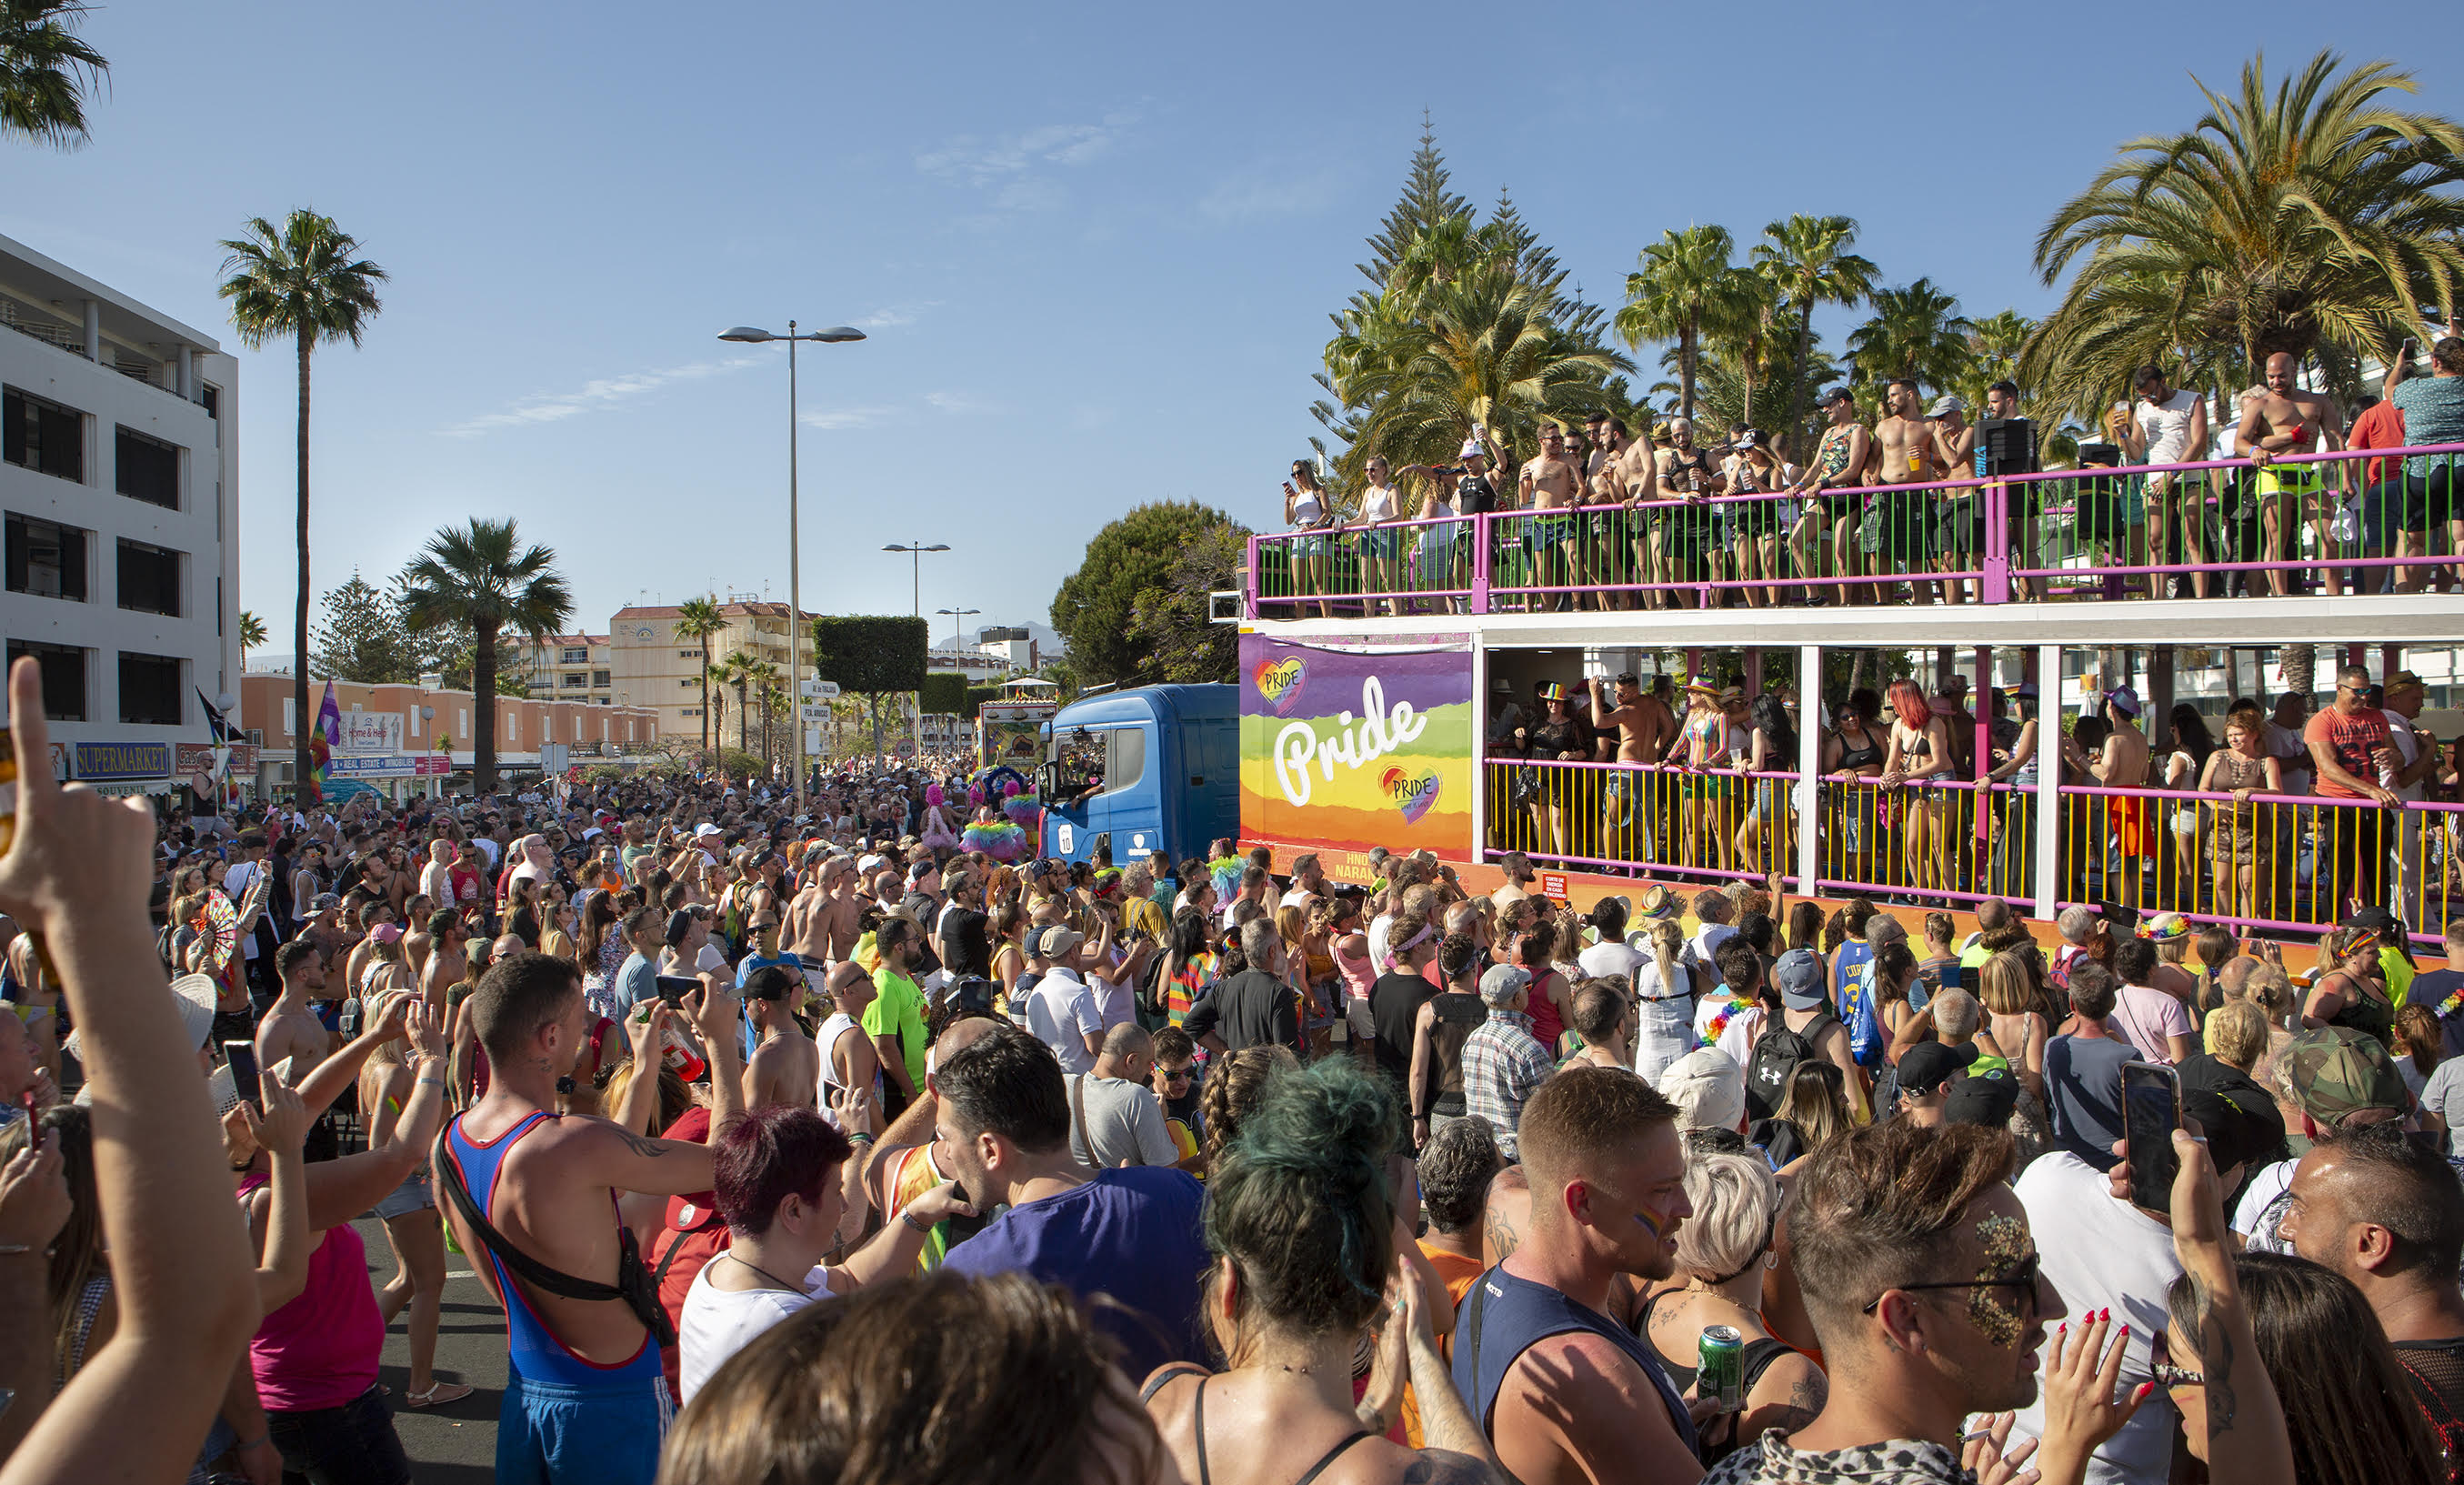 playa del ingles gay festival